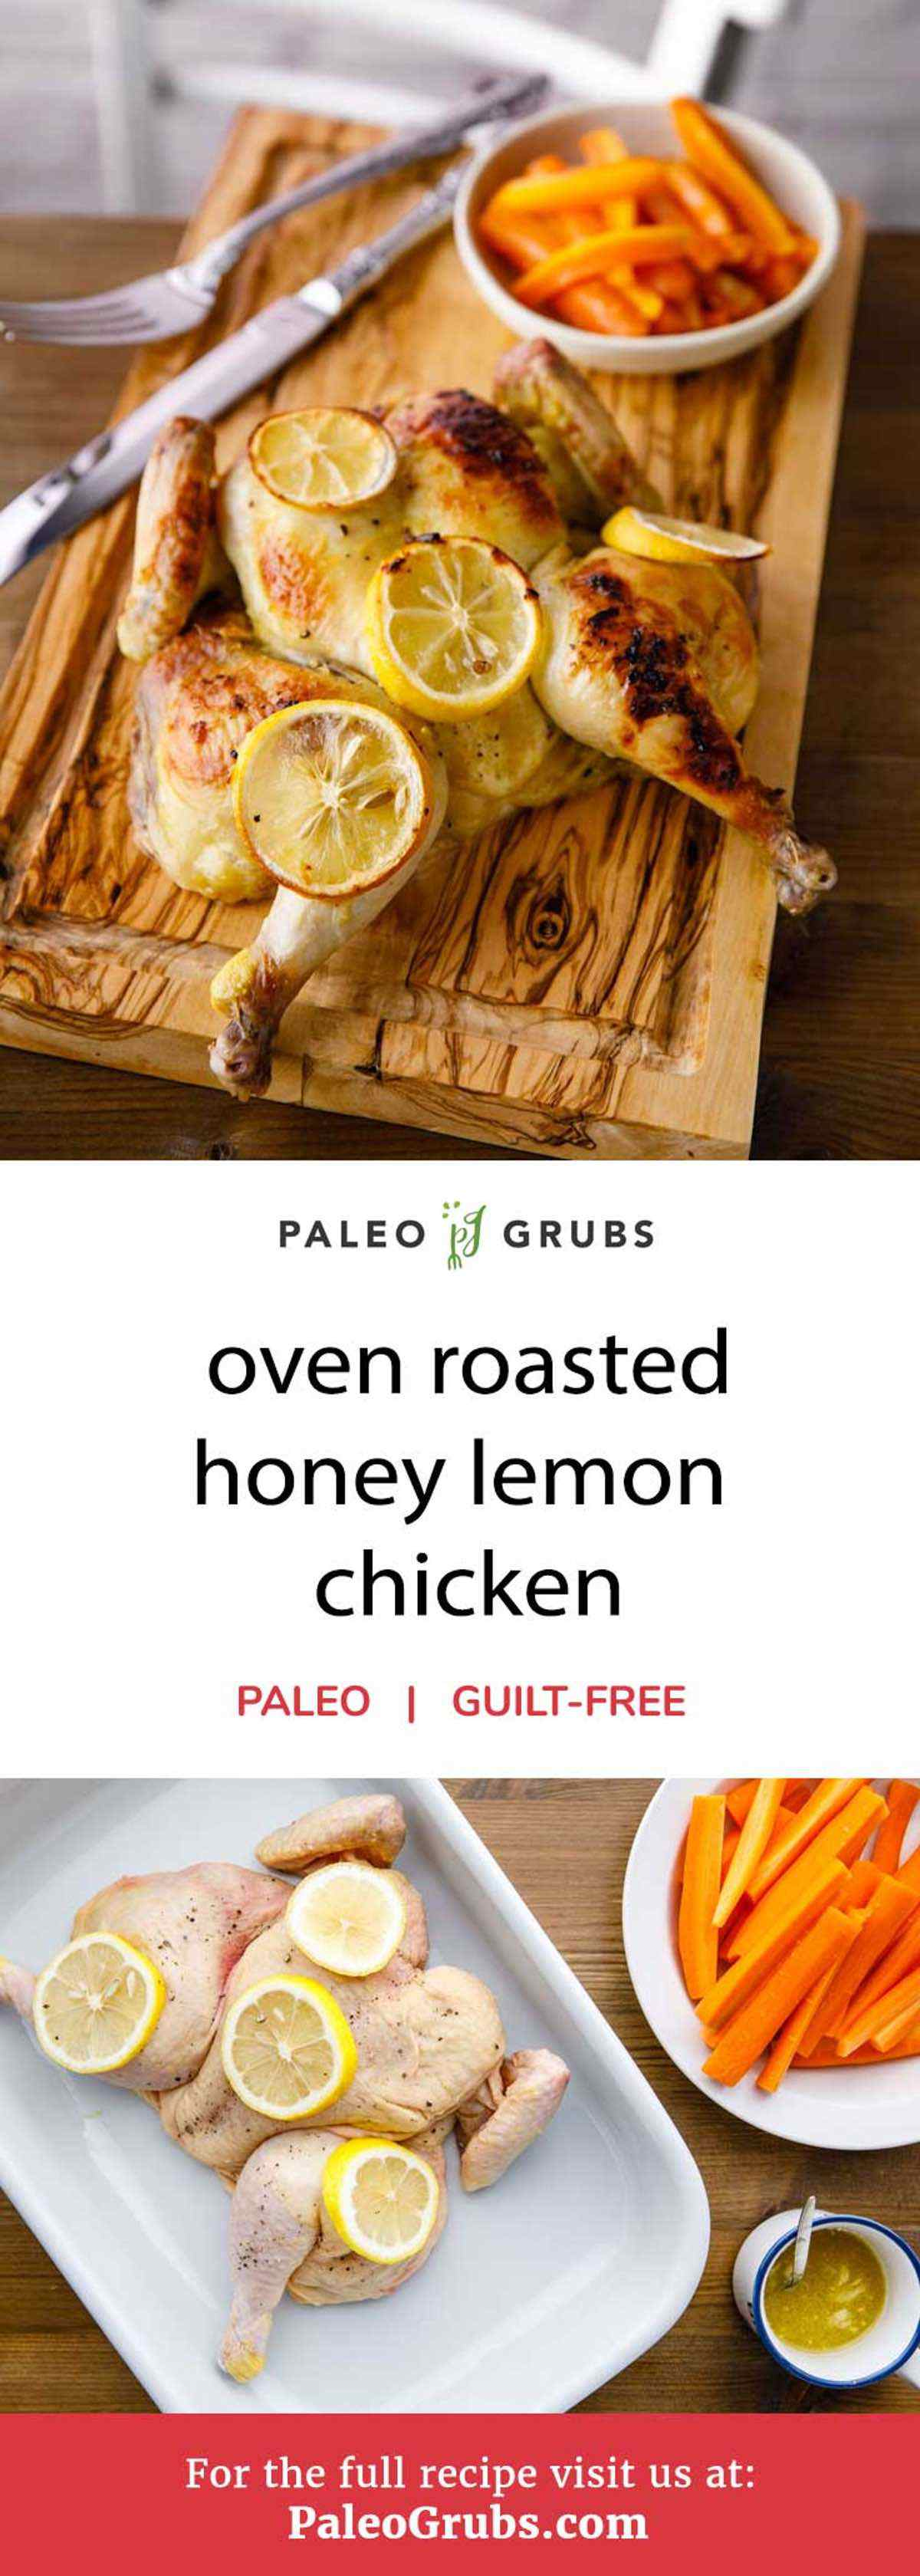 Looking for a new and different way to enjoy eating chicken? You've come to the right place. This recipe uses a whole chicken that's been flattened the backbone removed and drizzled with a fantastic honey mixture and topped with lemon slices. Simply bake it for 25-30 minutes and you're all set to enjoy an unbelievably juicy roasted honey lemon chicken.